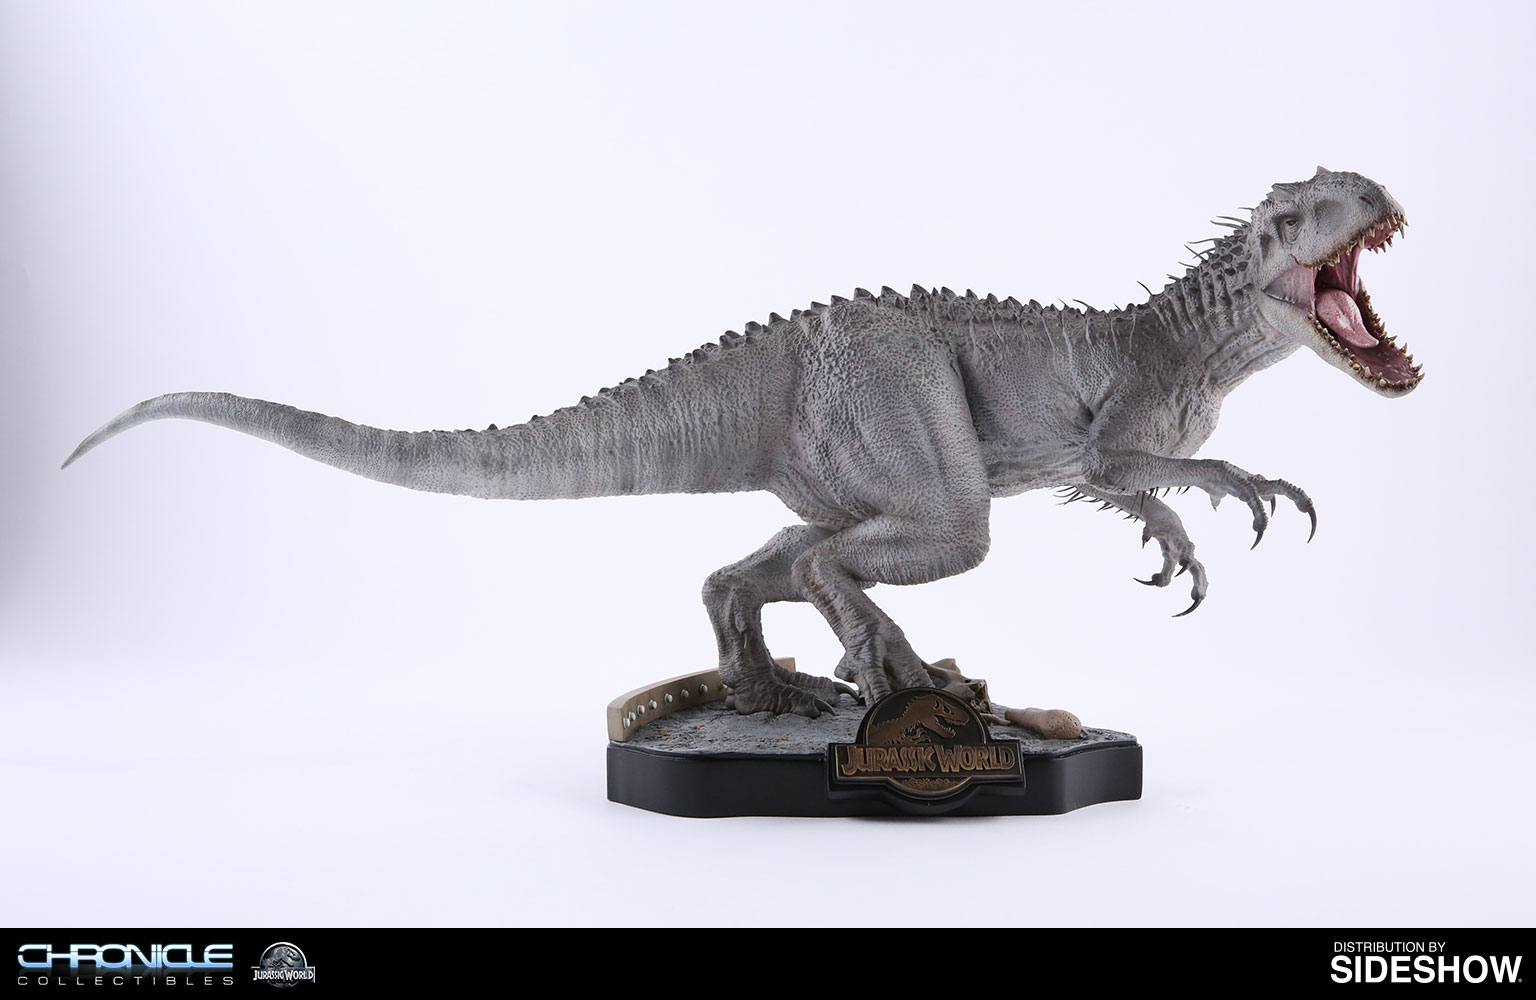 jurassic world final battle indominus rex statue by chronicl sideshow collectibles. Black Bedroom Furniture Sets. Home Design Ideas